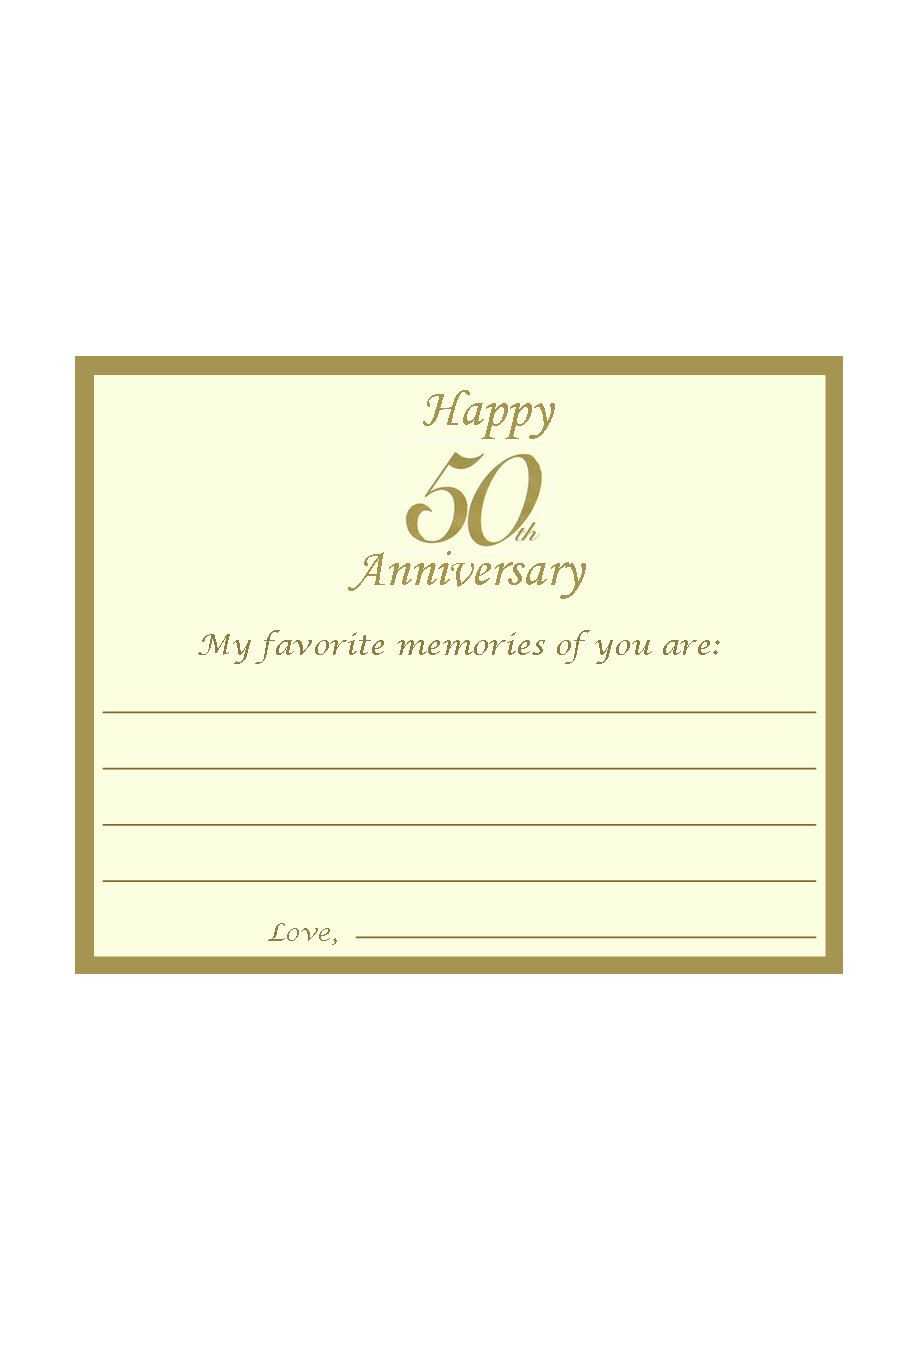 50th Anniversary Favorite Memories, Best Wishes Cards - Personalized ...